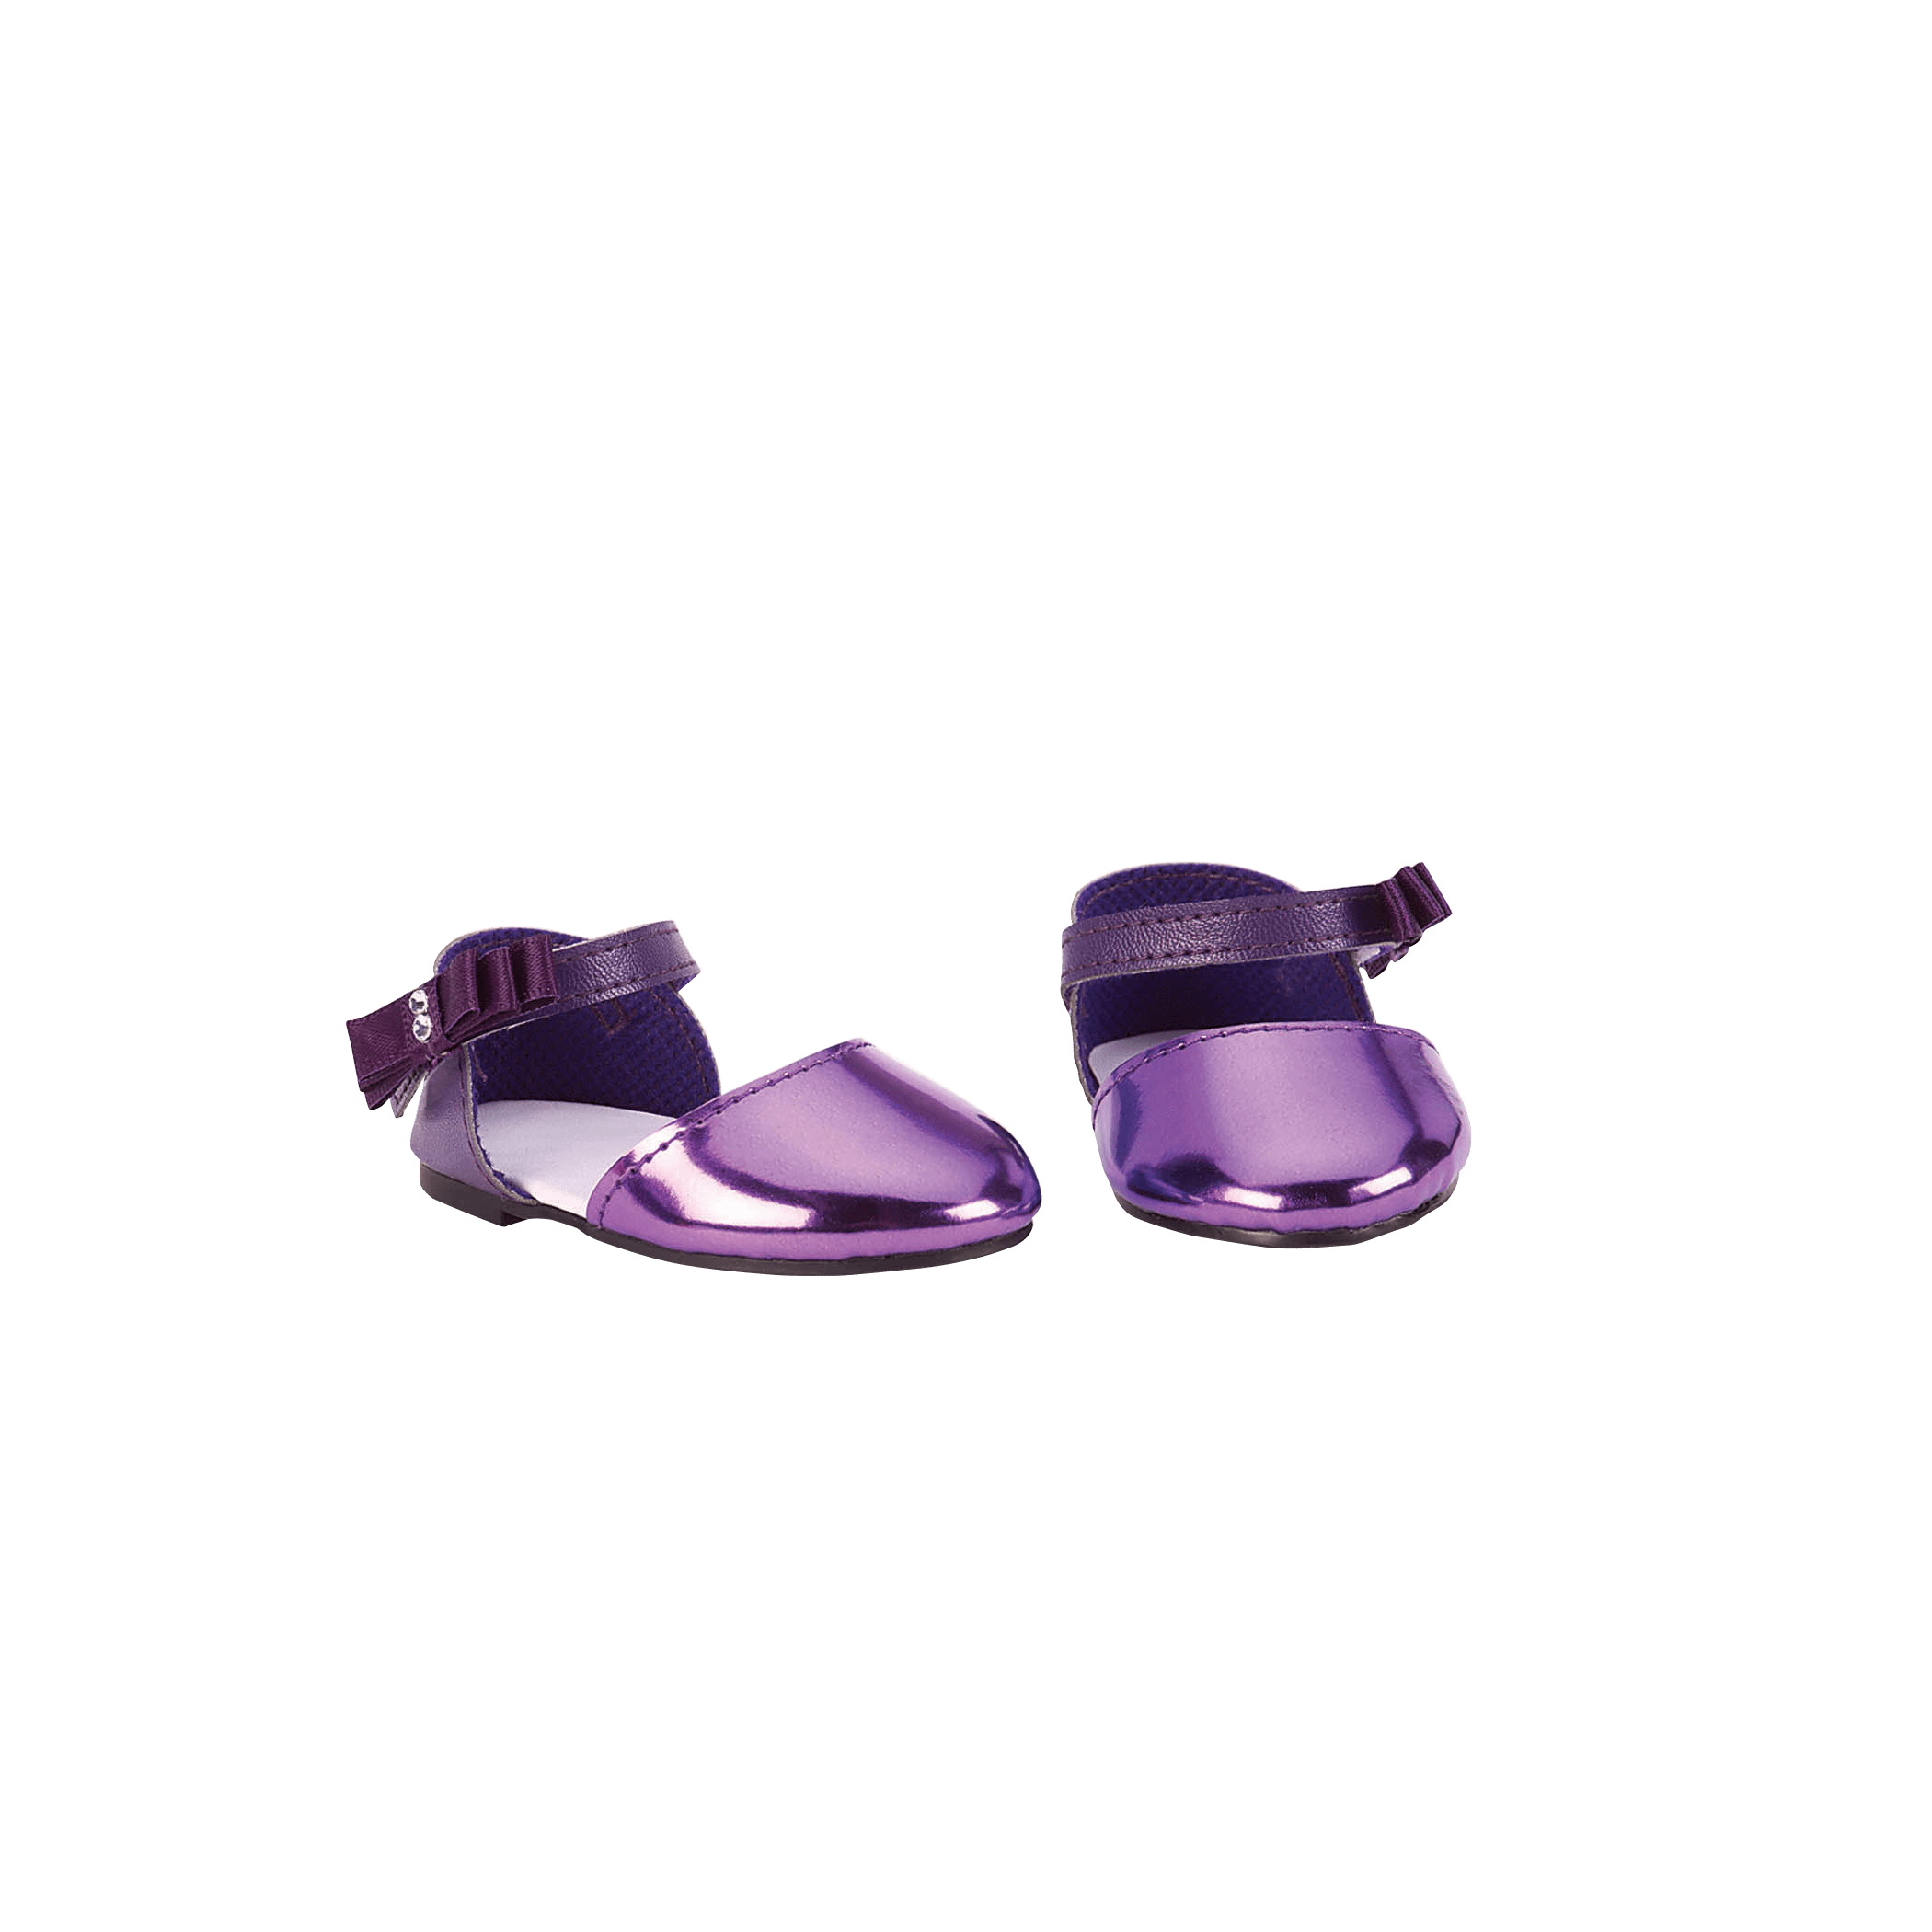 Patent Purple Fashion Shoes for 18-inch dolls